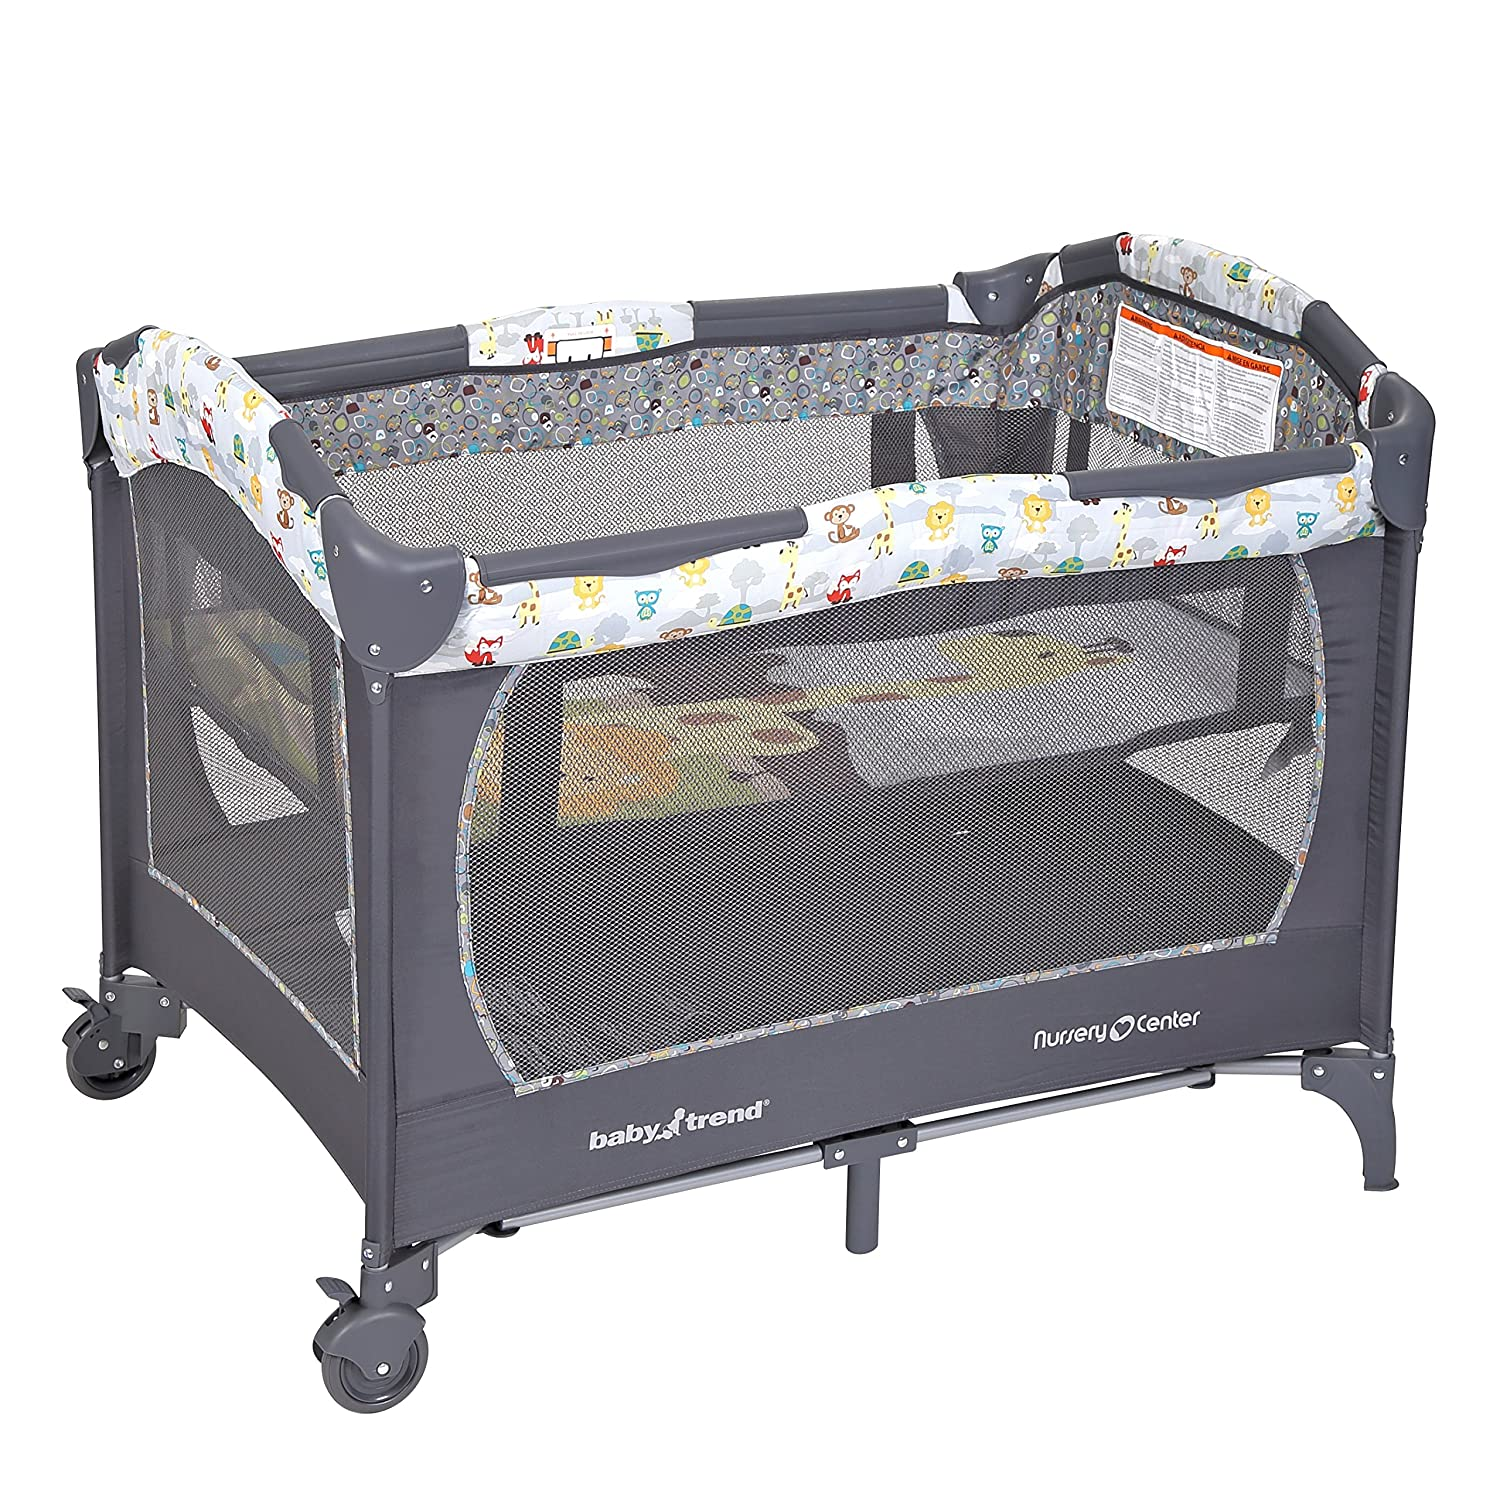 Tanzania Nursery Center Playard Baby Infant Bassinet Playpen Crib Nursery Center